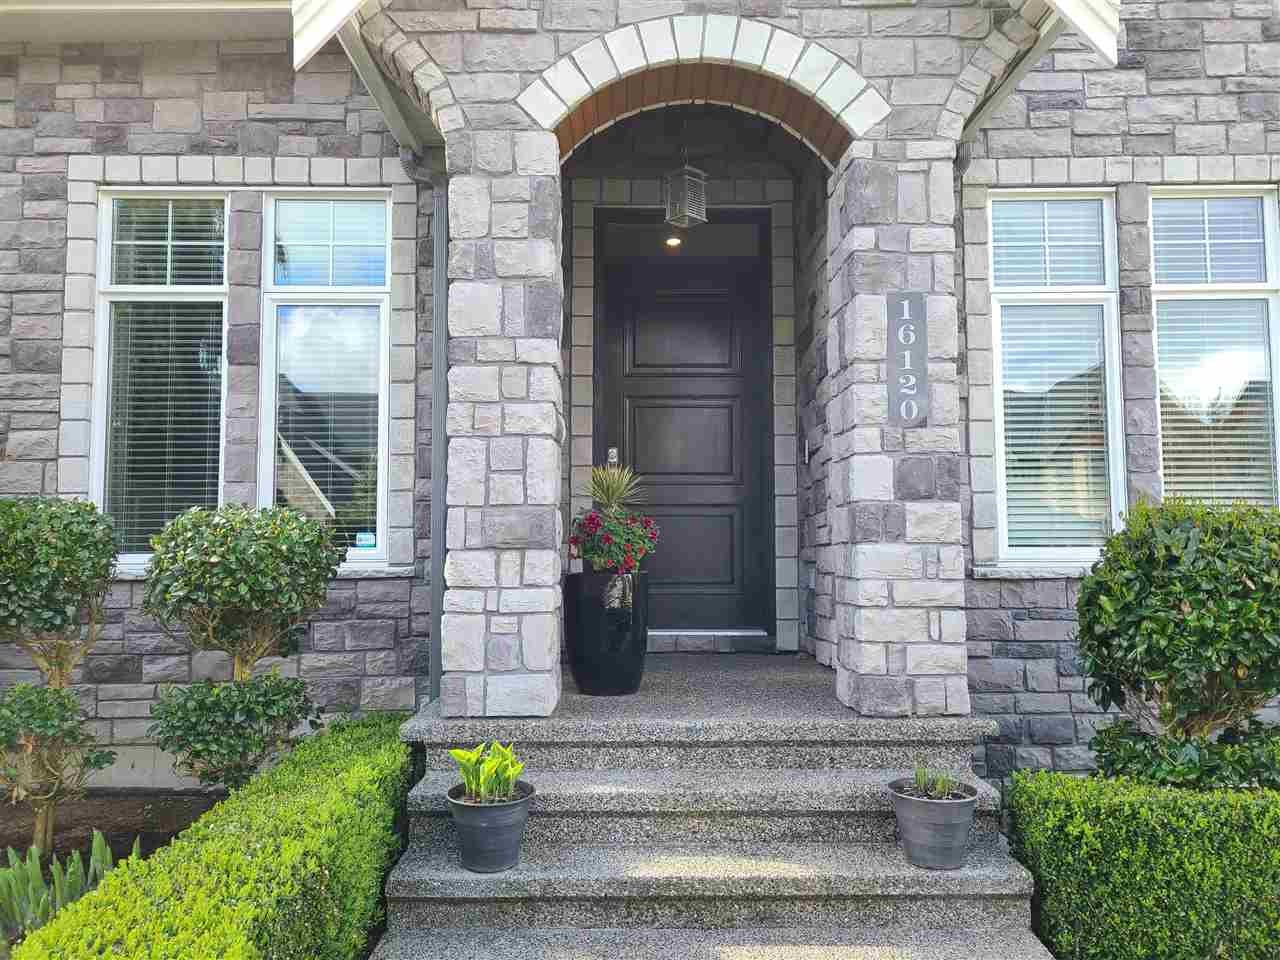 16120 27A AVENUE - Grandview Surrey House/Single Family for sale, 5 Bedrooms (R2575510) - #4